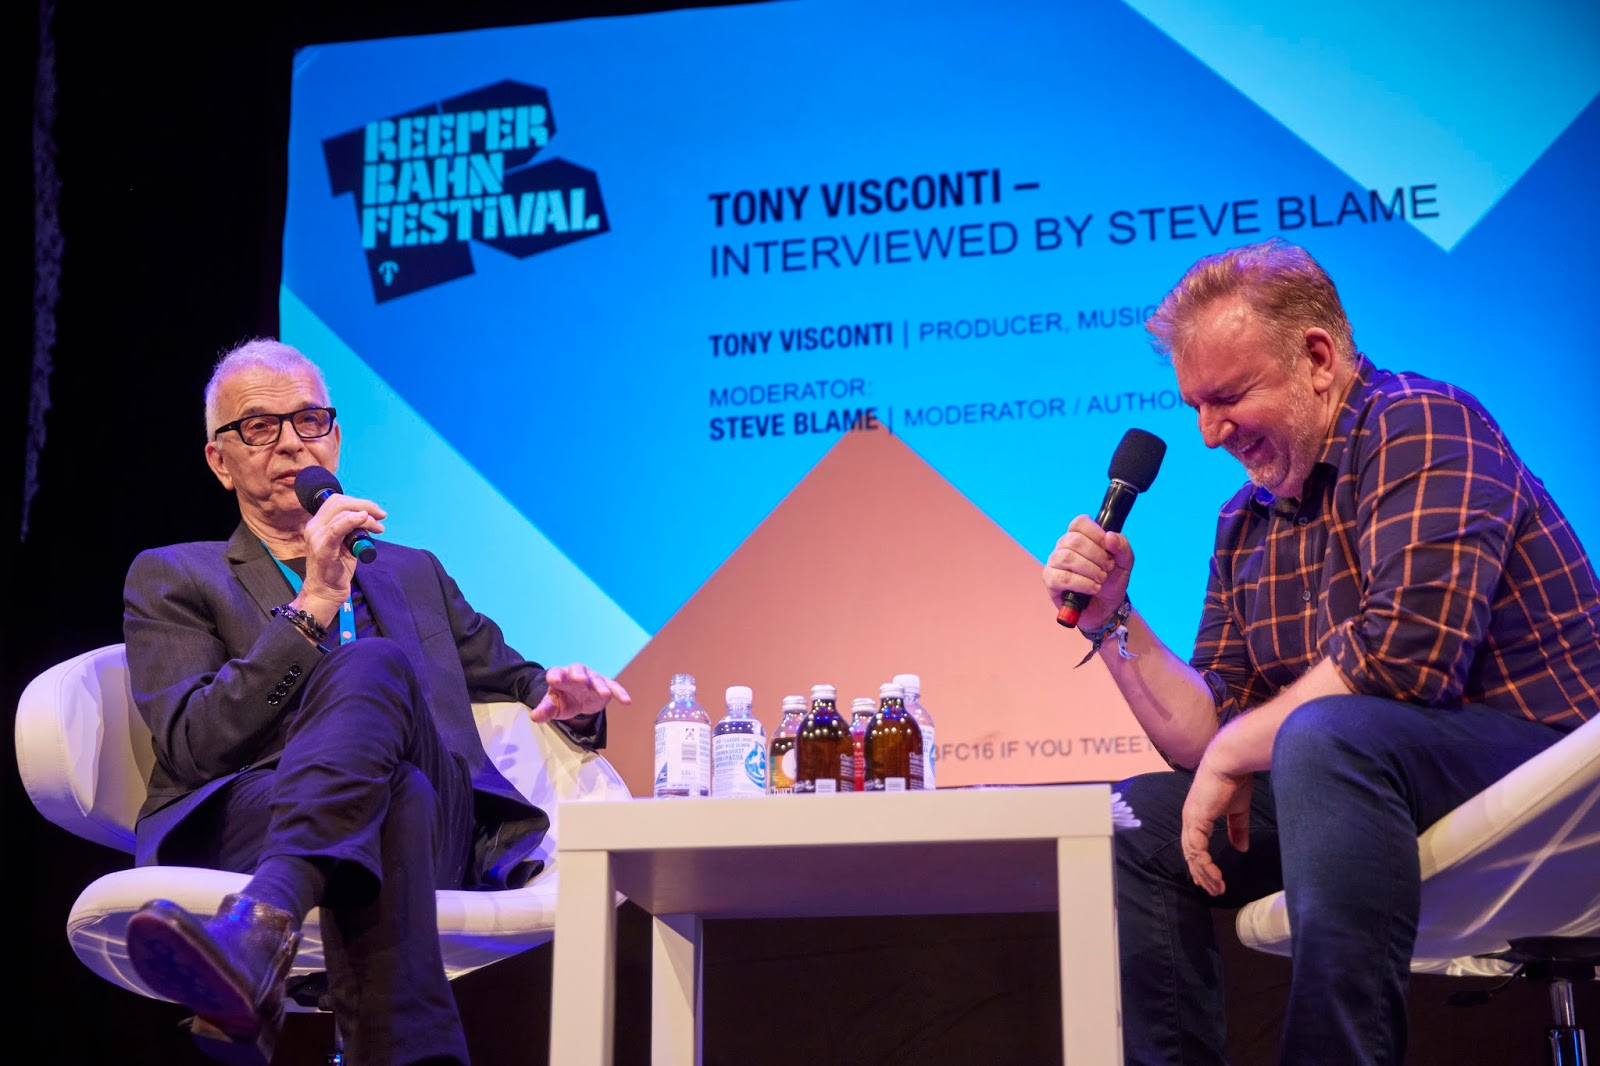 tony visconti reeperbahn festival 2016